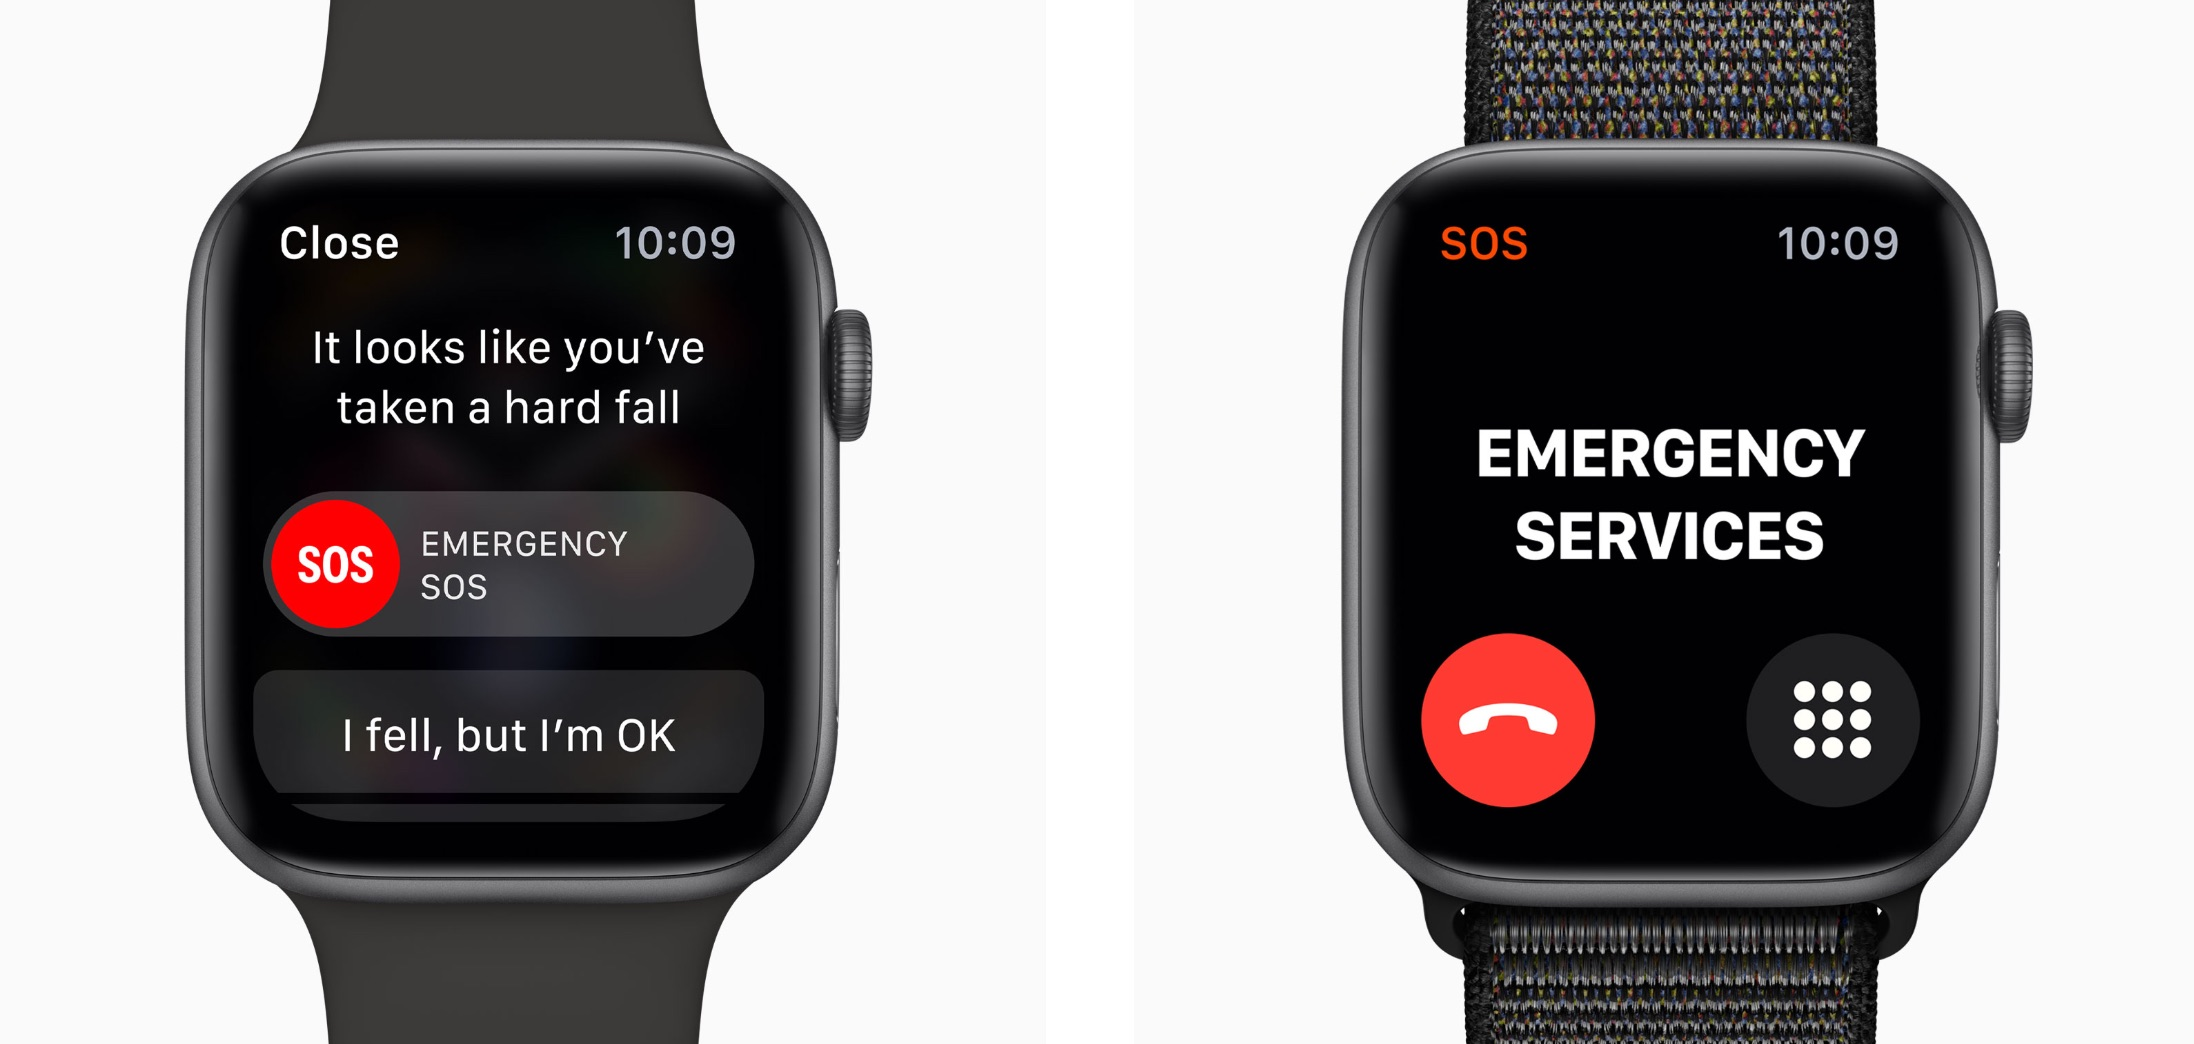 Apple Watch Fall Detection Feature Credited With Helping to Save Unresponsive AZ Man